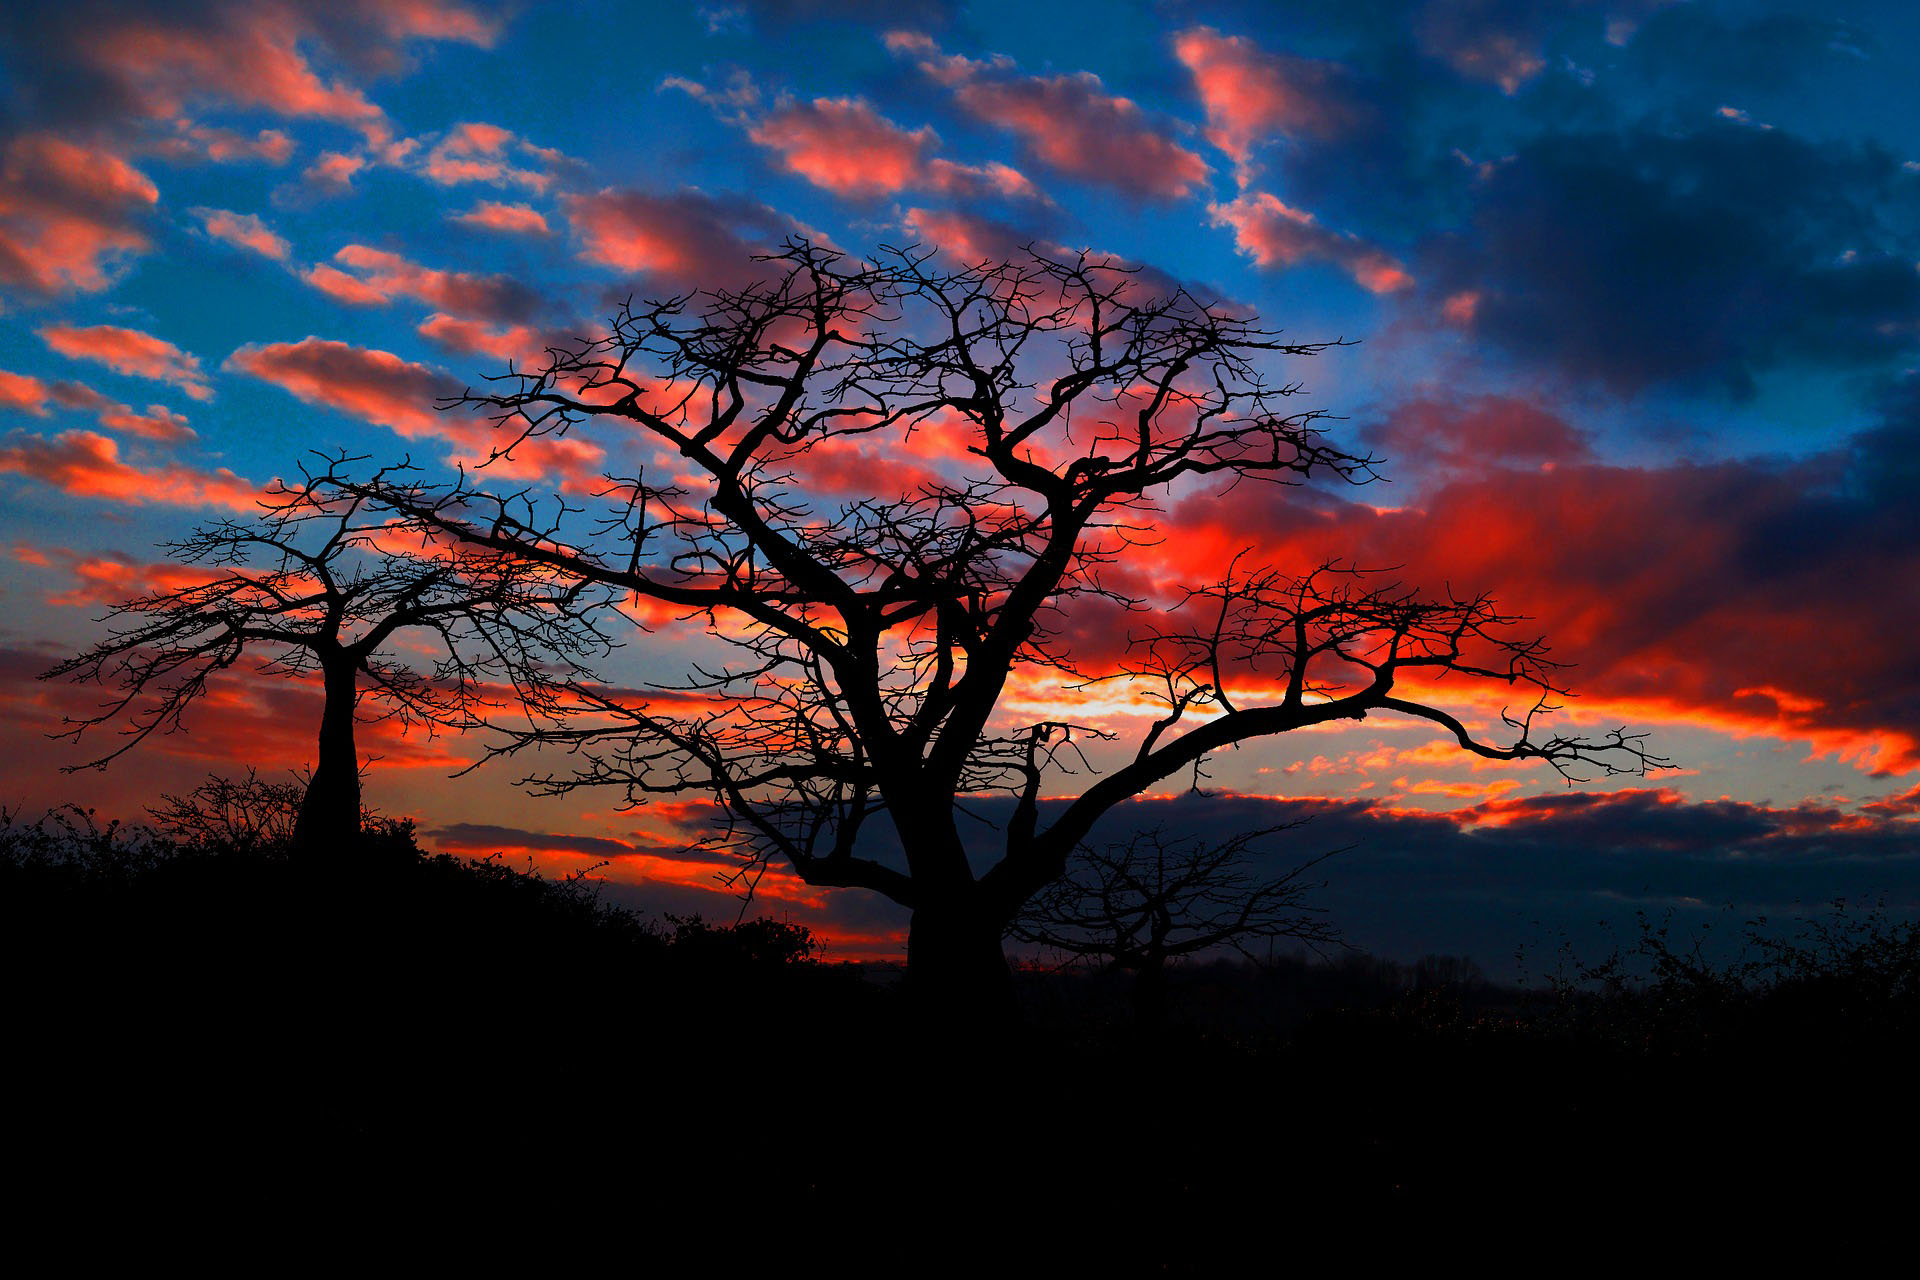 A vista in Angola of 2 trees in black are silhouetted against a brilliant sky of bright blue with orange-tinted clouds